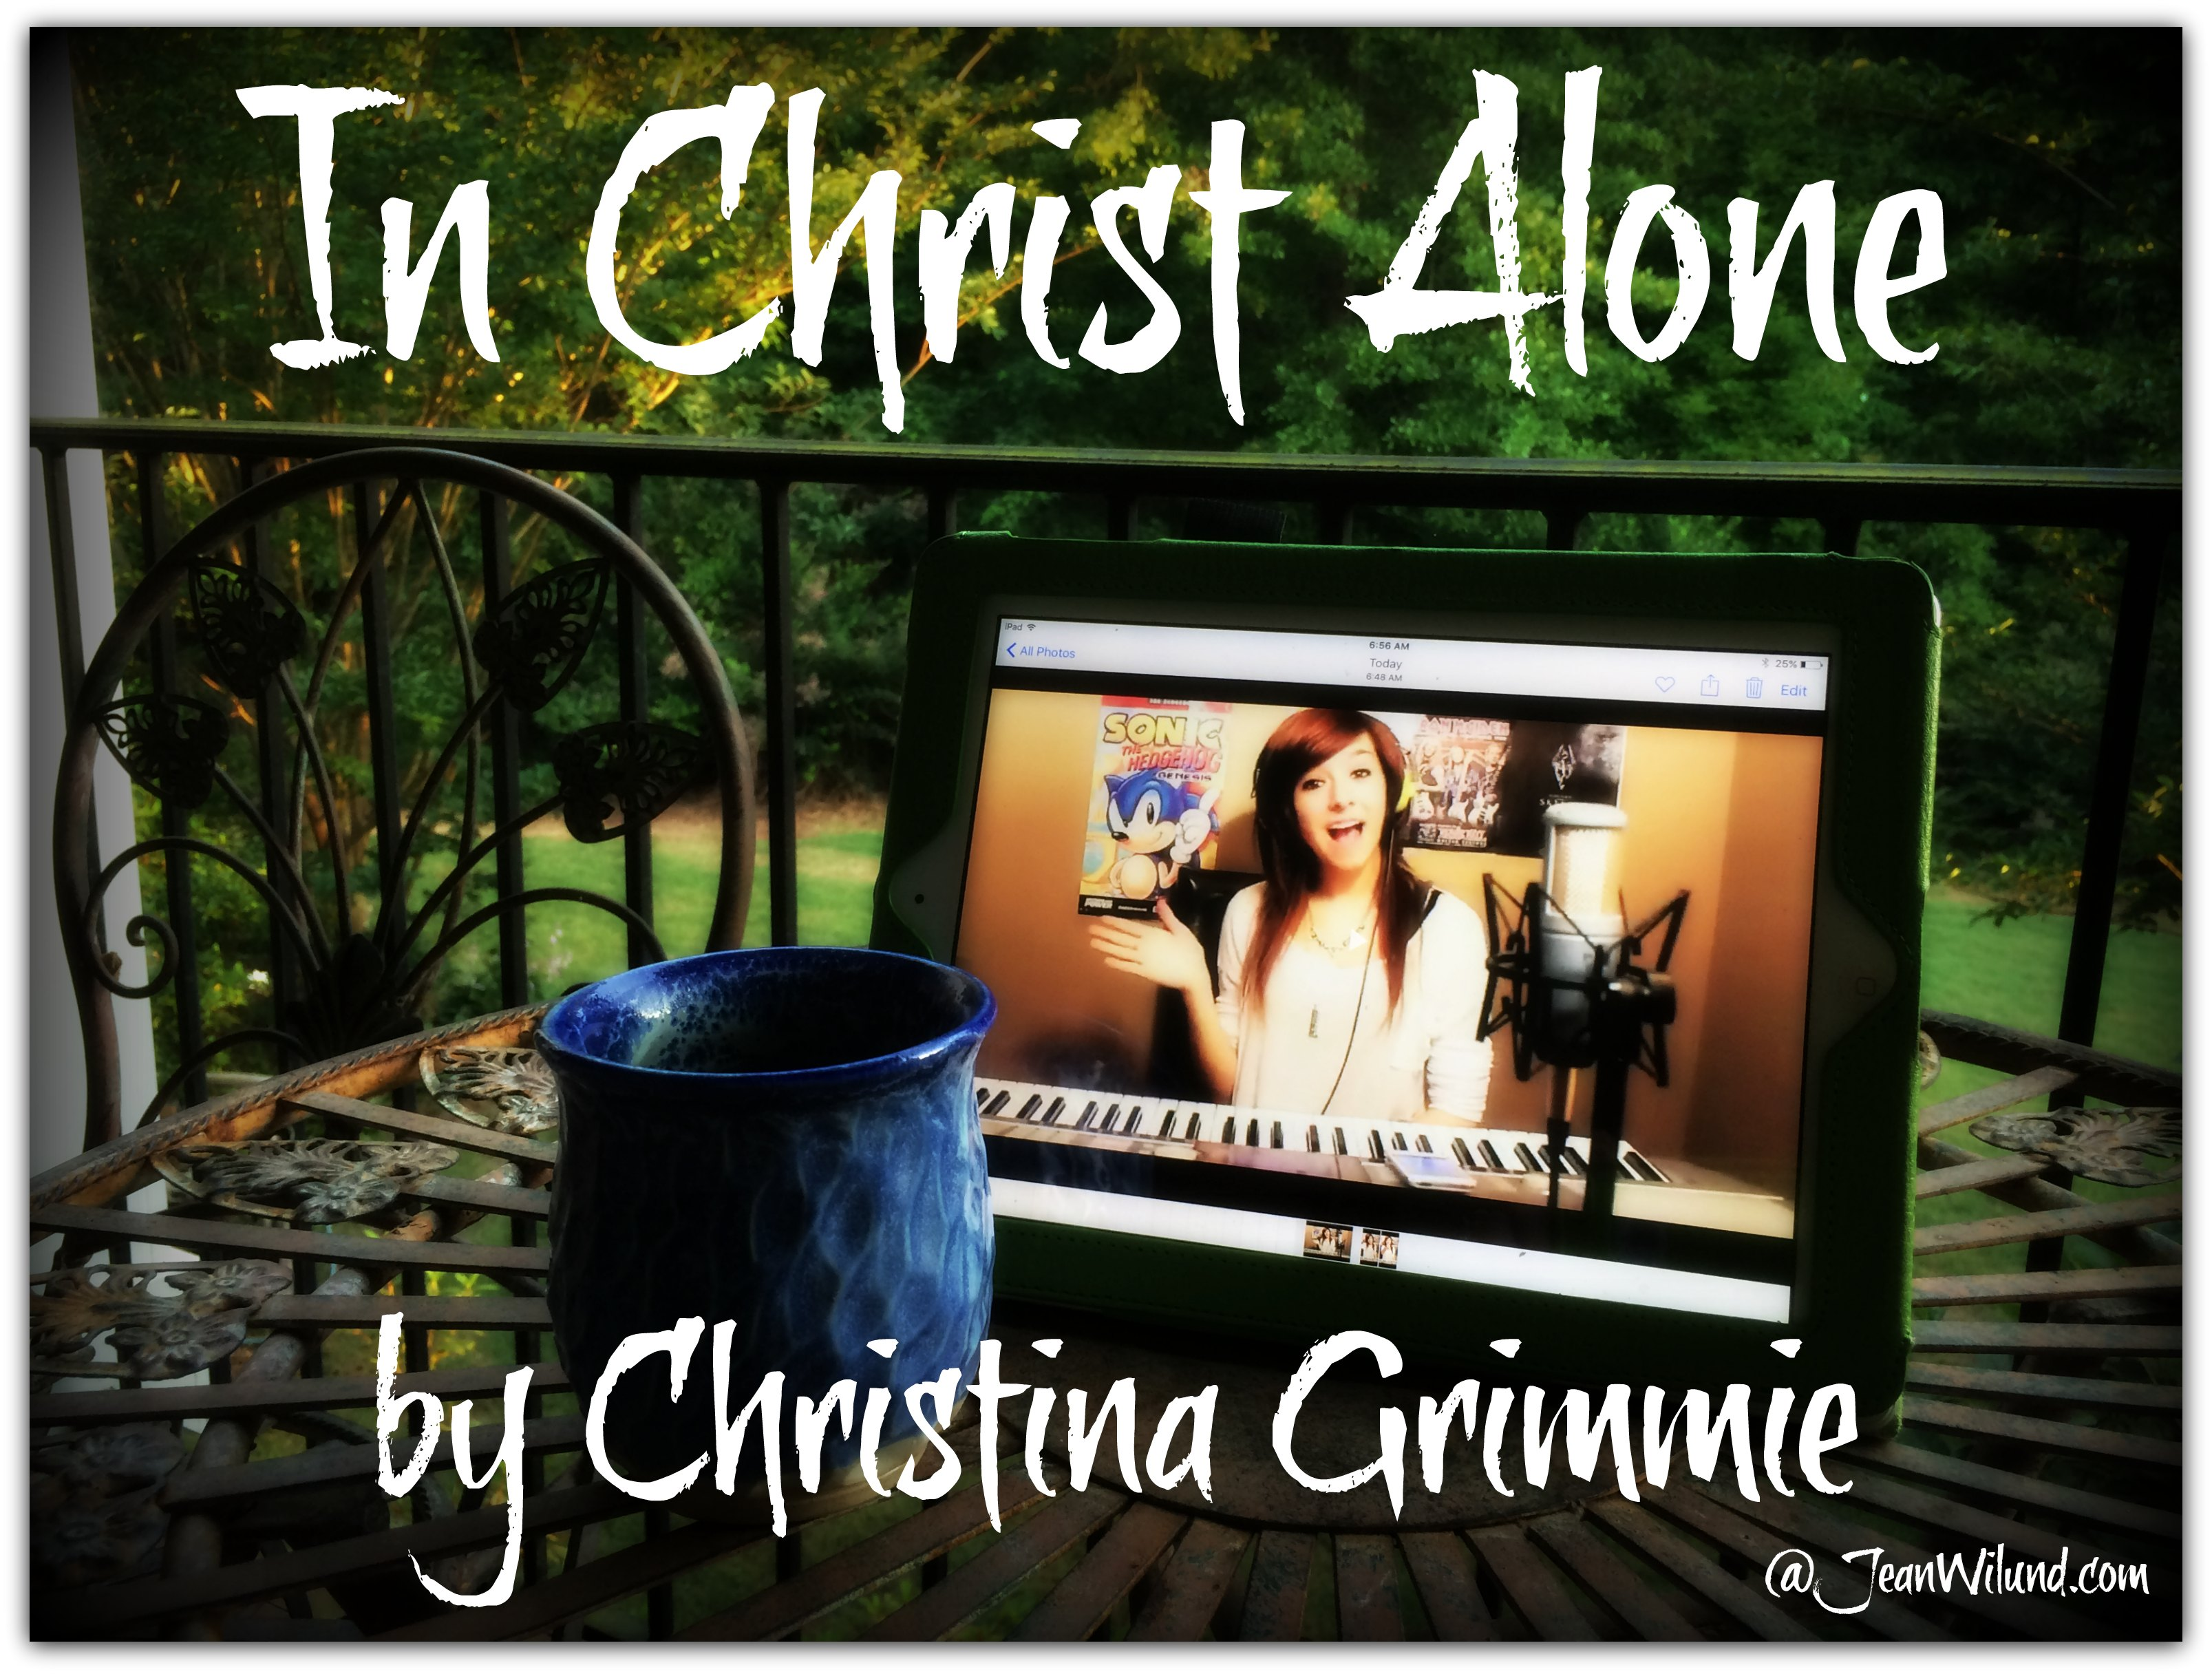 Click to listen to Christina Grimmie sing In Christ Alone and be encouraged via www.JeanWilund.com